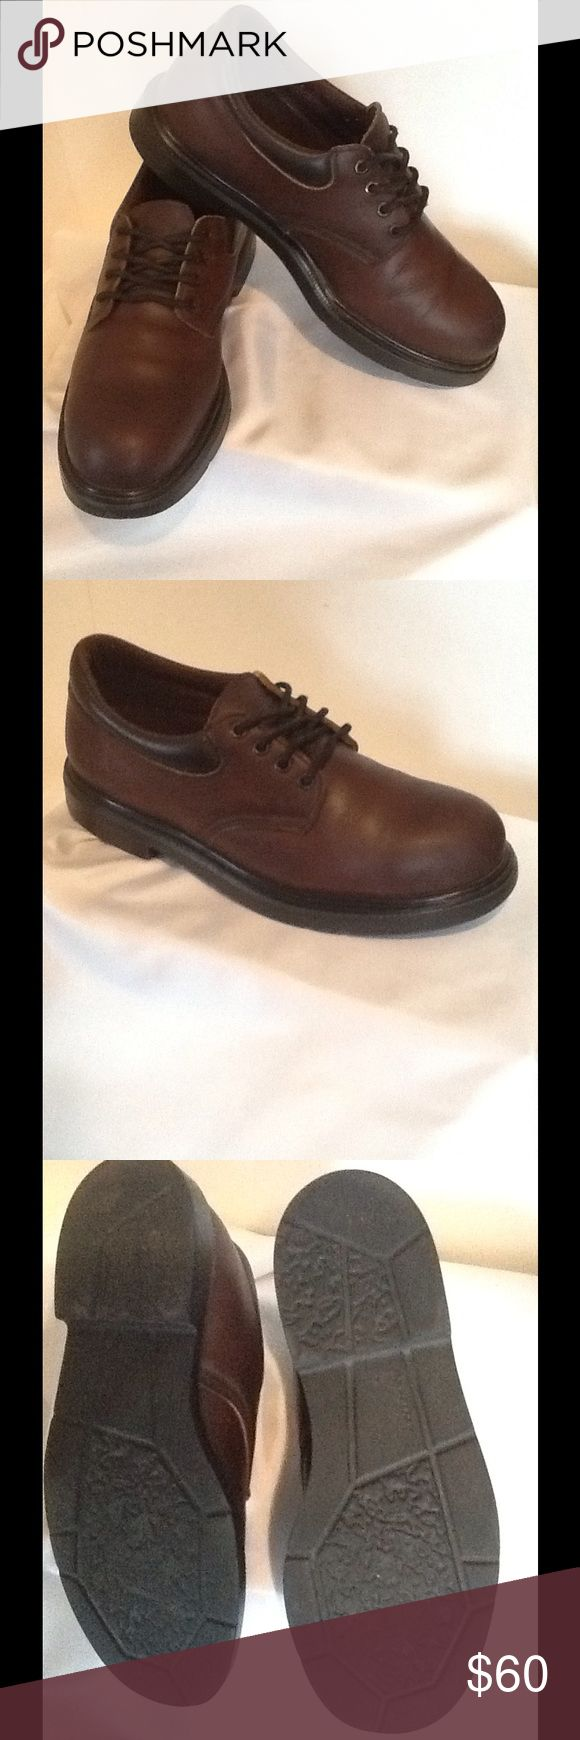 Men's Red Wing Steel Toe Safety Oxford Shoes (USED) Men's Red Wing Steel Toe Safety Oxford Shoes good condition. Size 11 D Red Wing Shoes Oxfords & Derbys